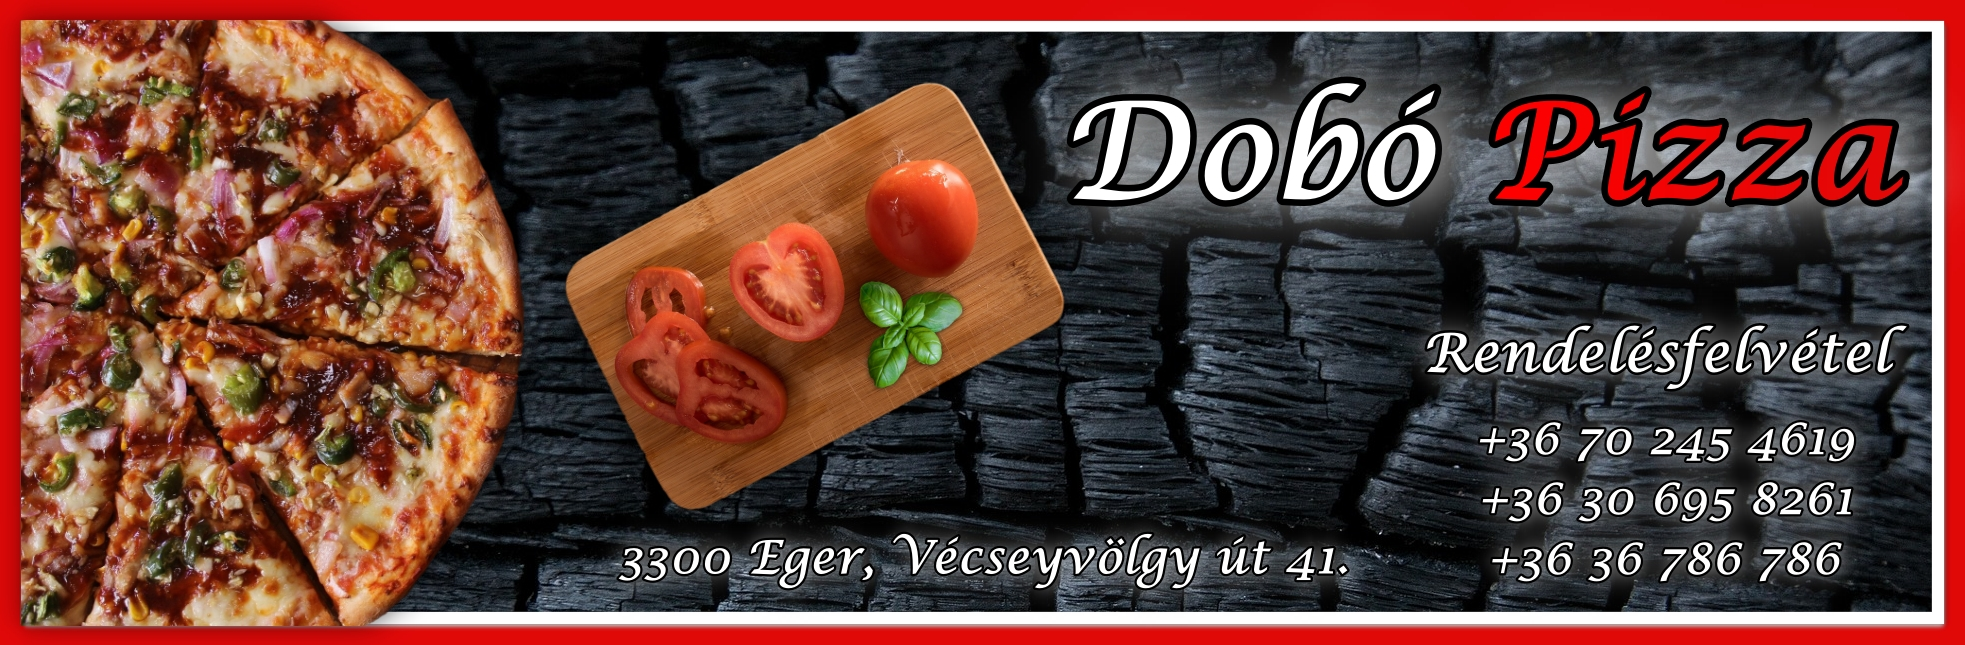 Dobo_Pizza_header_1920x600.jpg